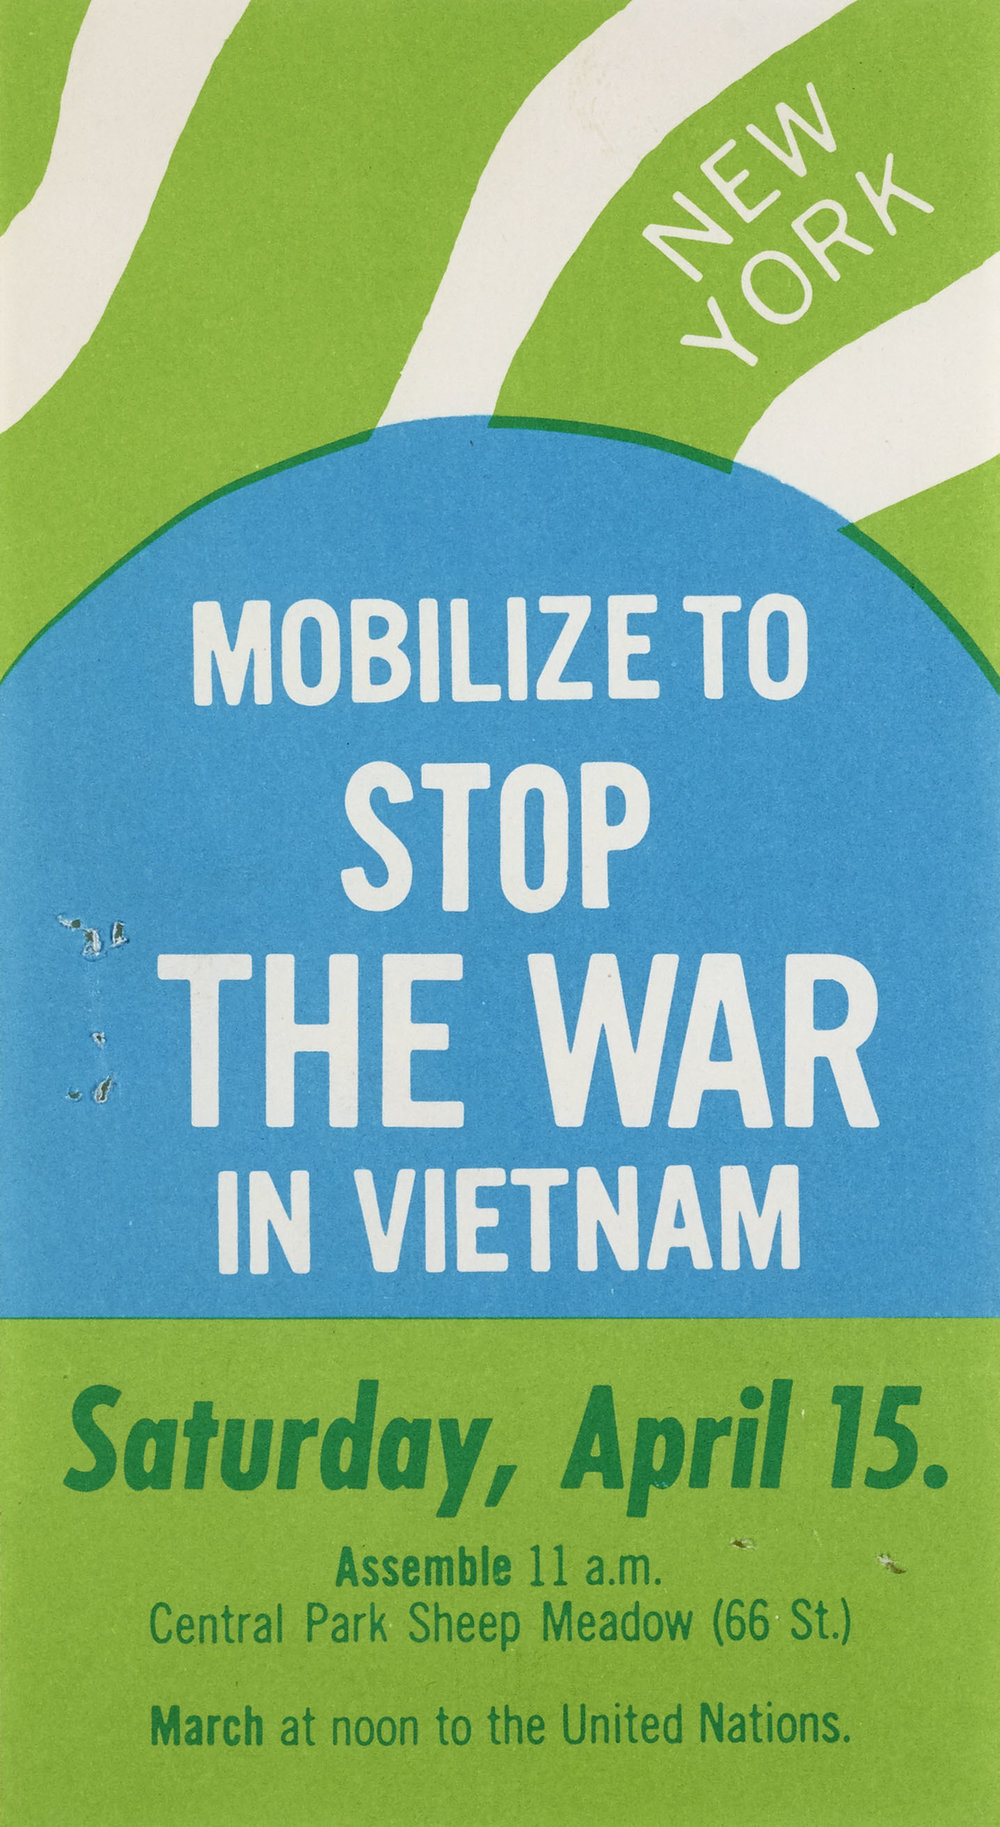 Mobilize to Stop the War, 1967